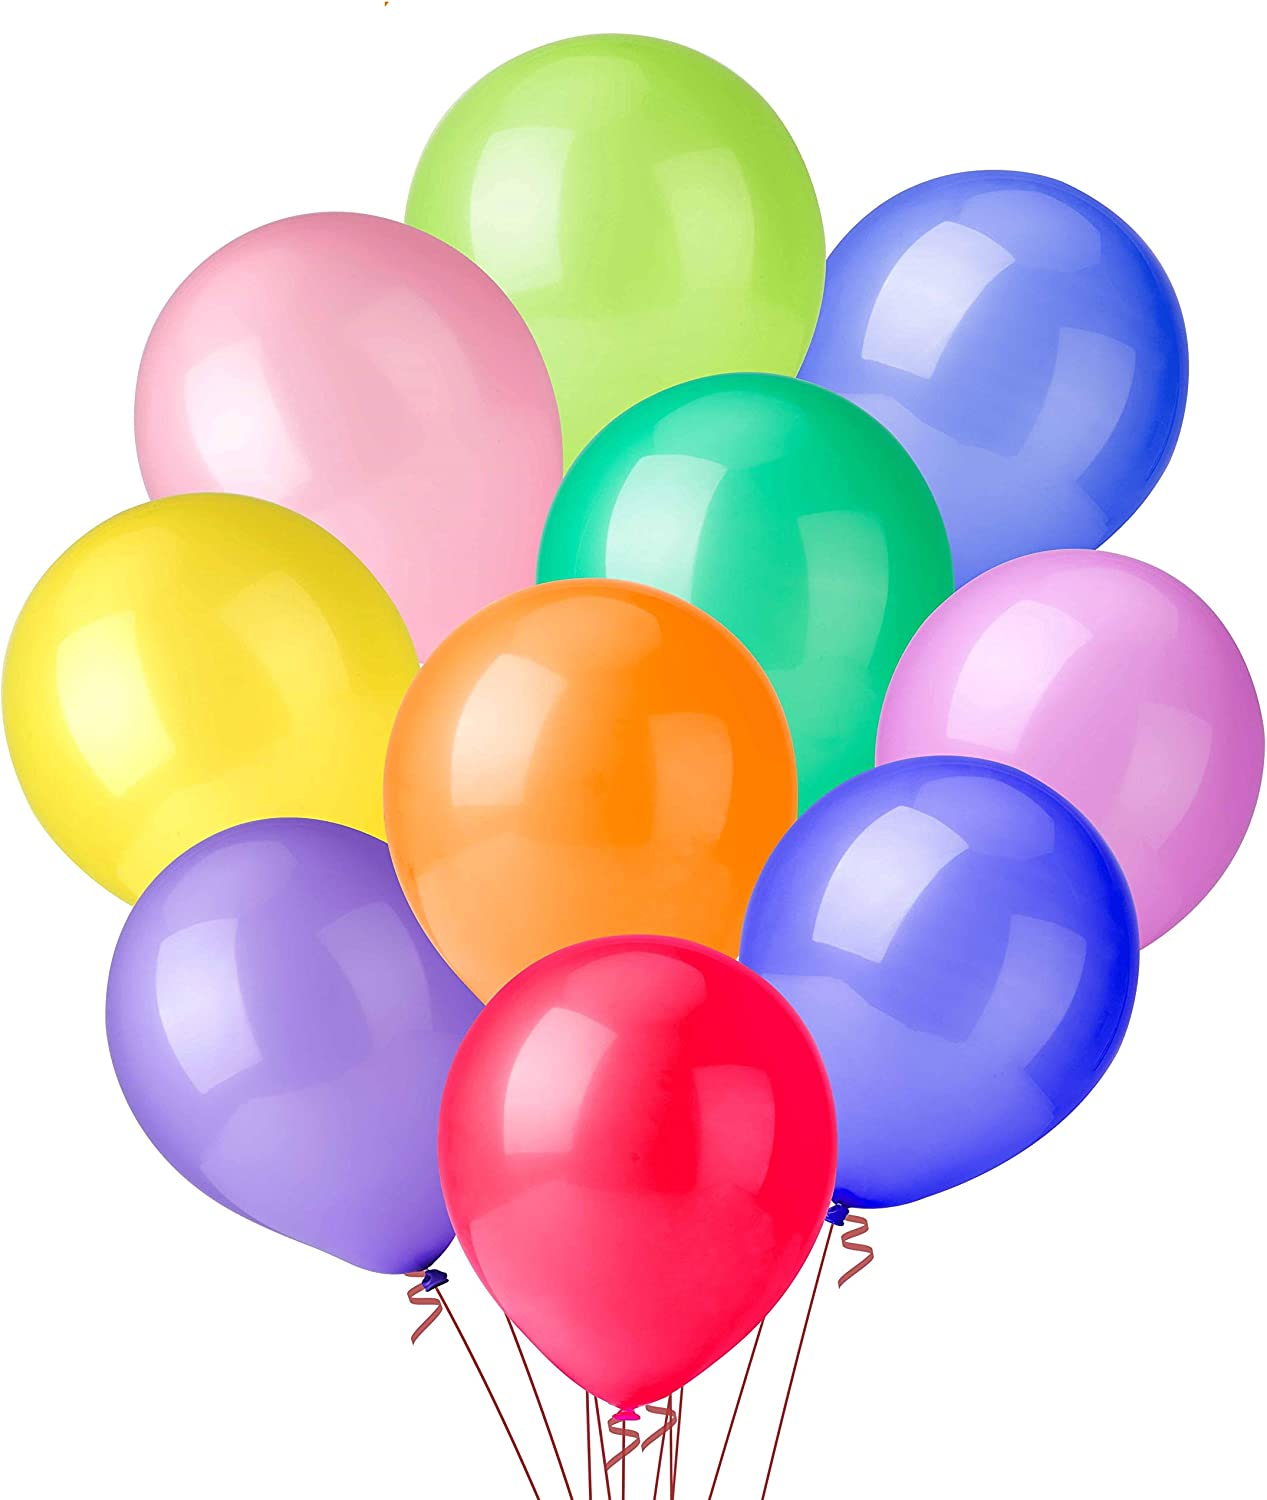 100 PCS Party Balloons, 12 Inch High Quality Assorted Colorful Balloons, Thickened Color Balloons Set, Ideal Decoration for Birthday, Party, Christmas, Wedding, Anniversary and Vacation